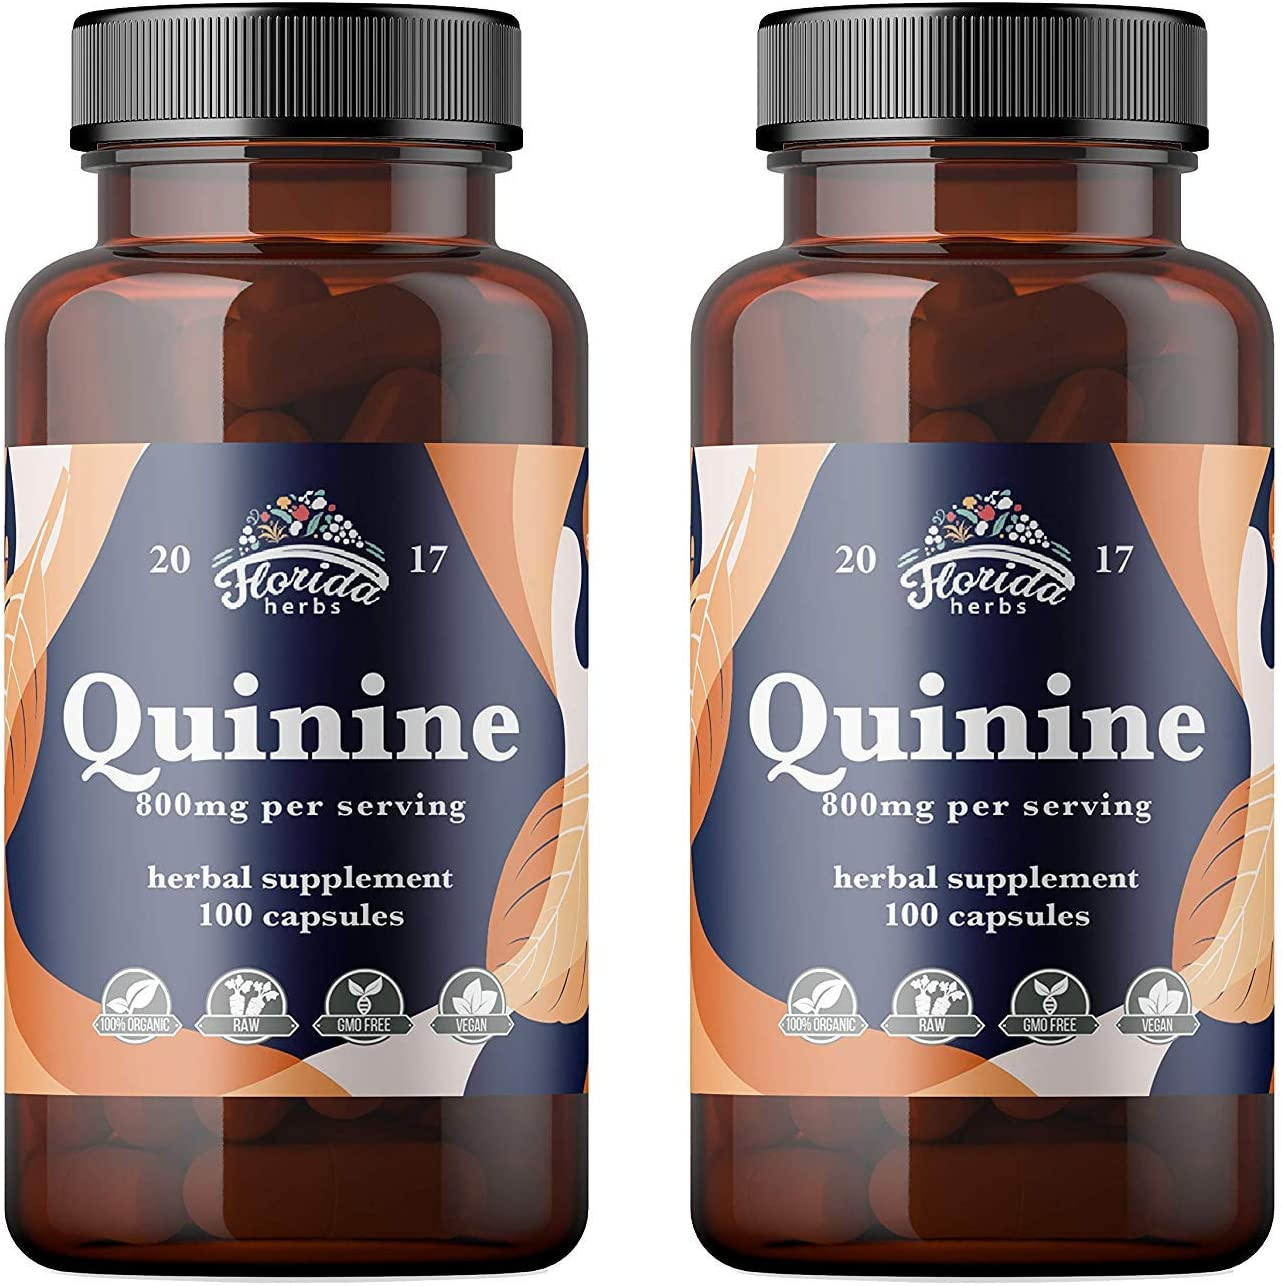 Quinine Capsules 800mg, Cinchona Bark Pills Cinchona succirubra, Peruvian Bark Herbal Supplement